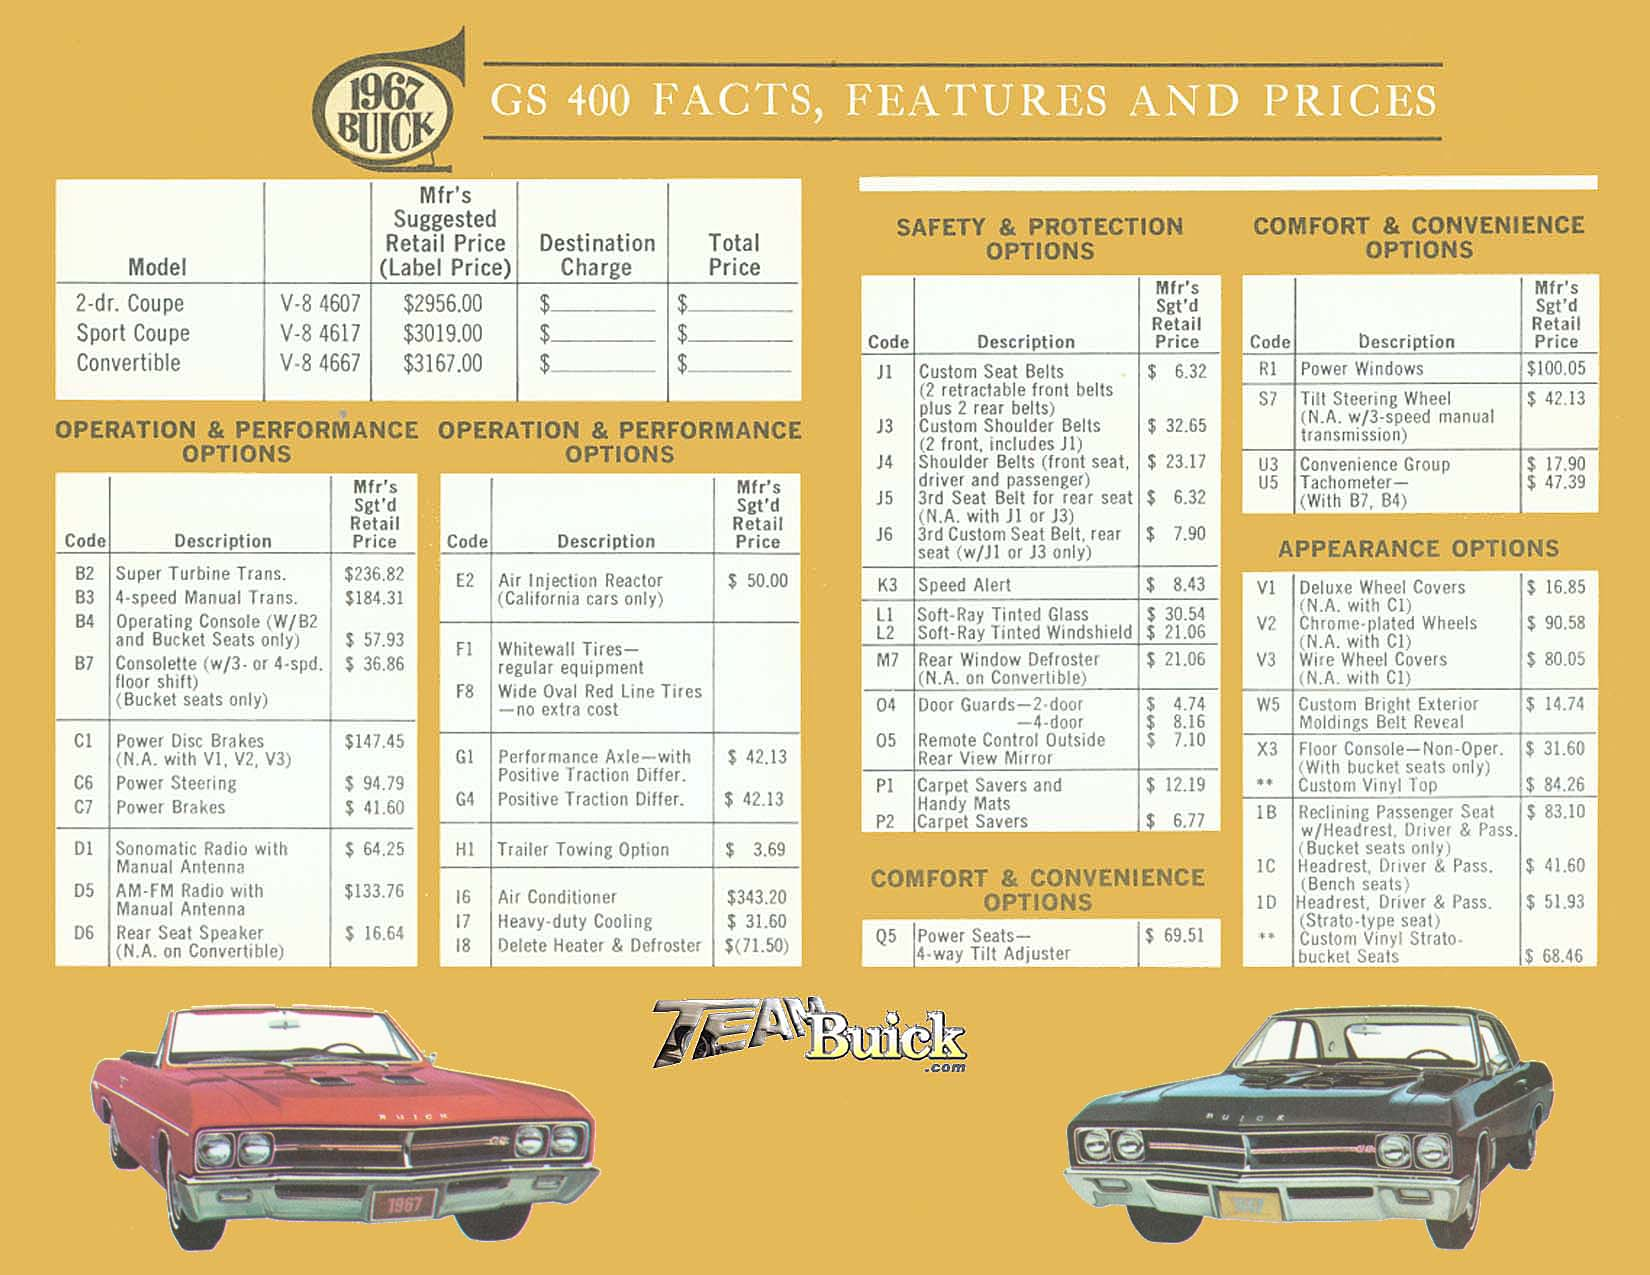 1967 Buick GS 400 Options and Codes